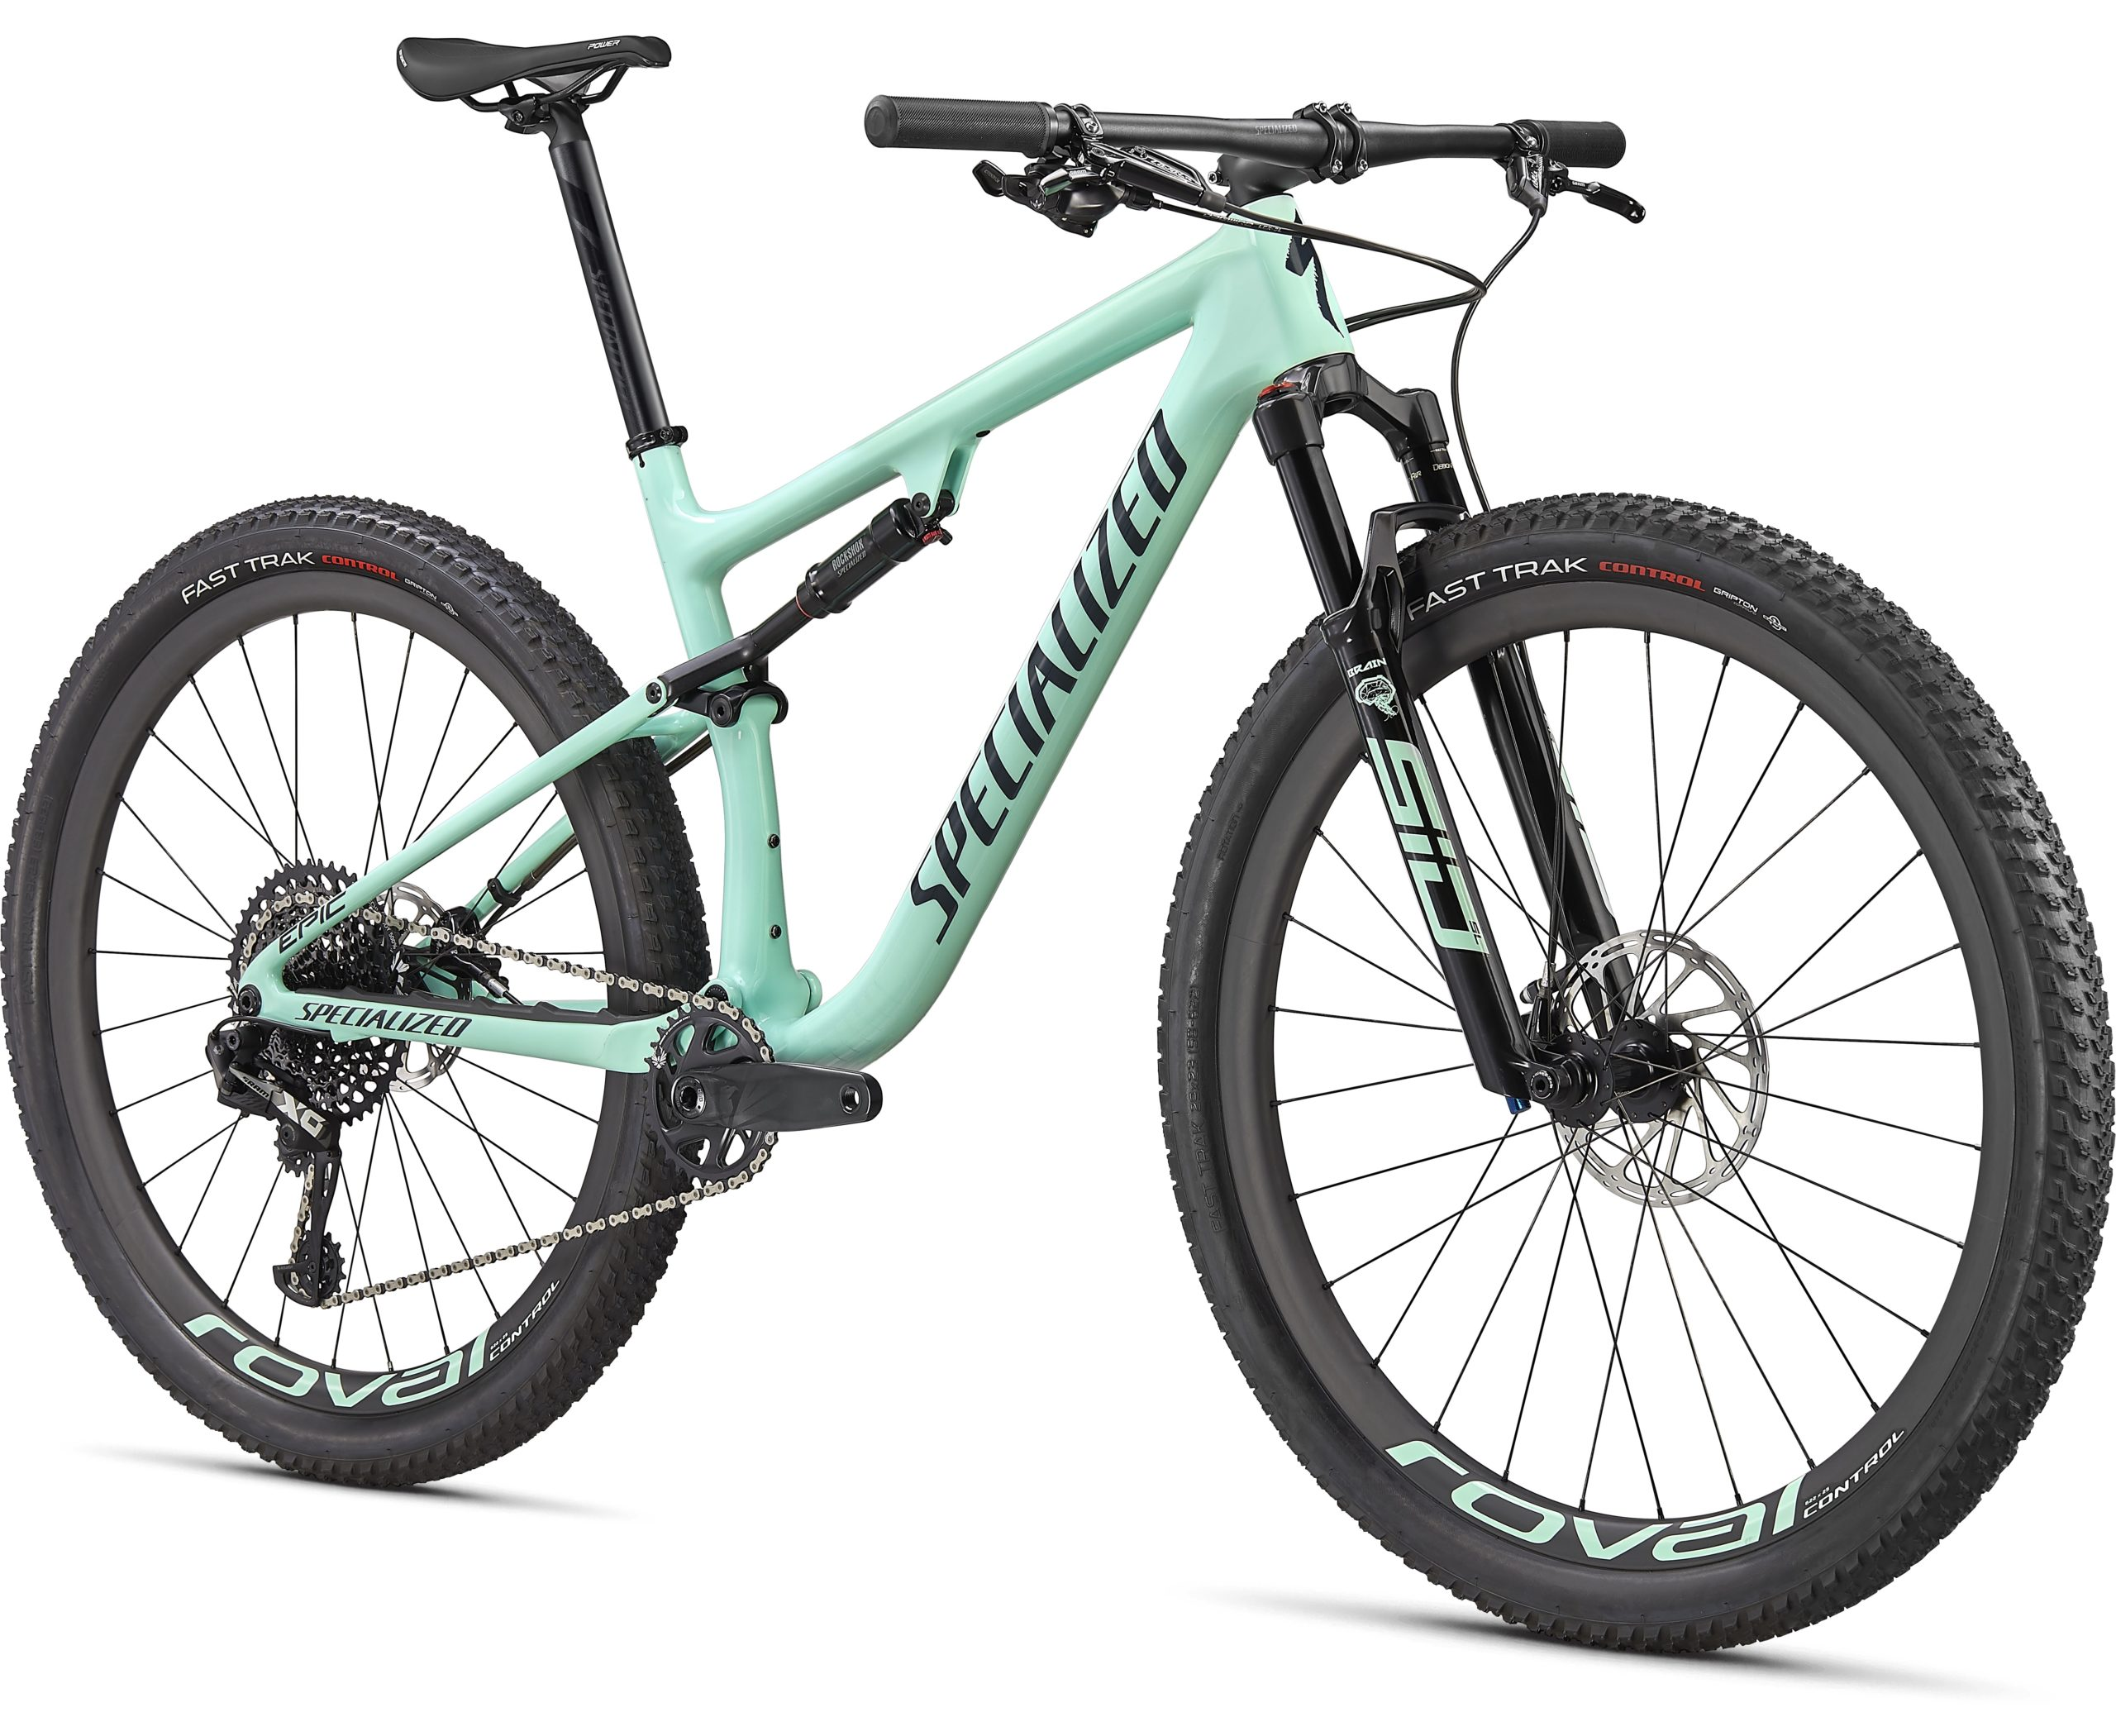 Specialized Epic full suspension mountain bike 2021